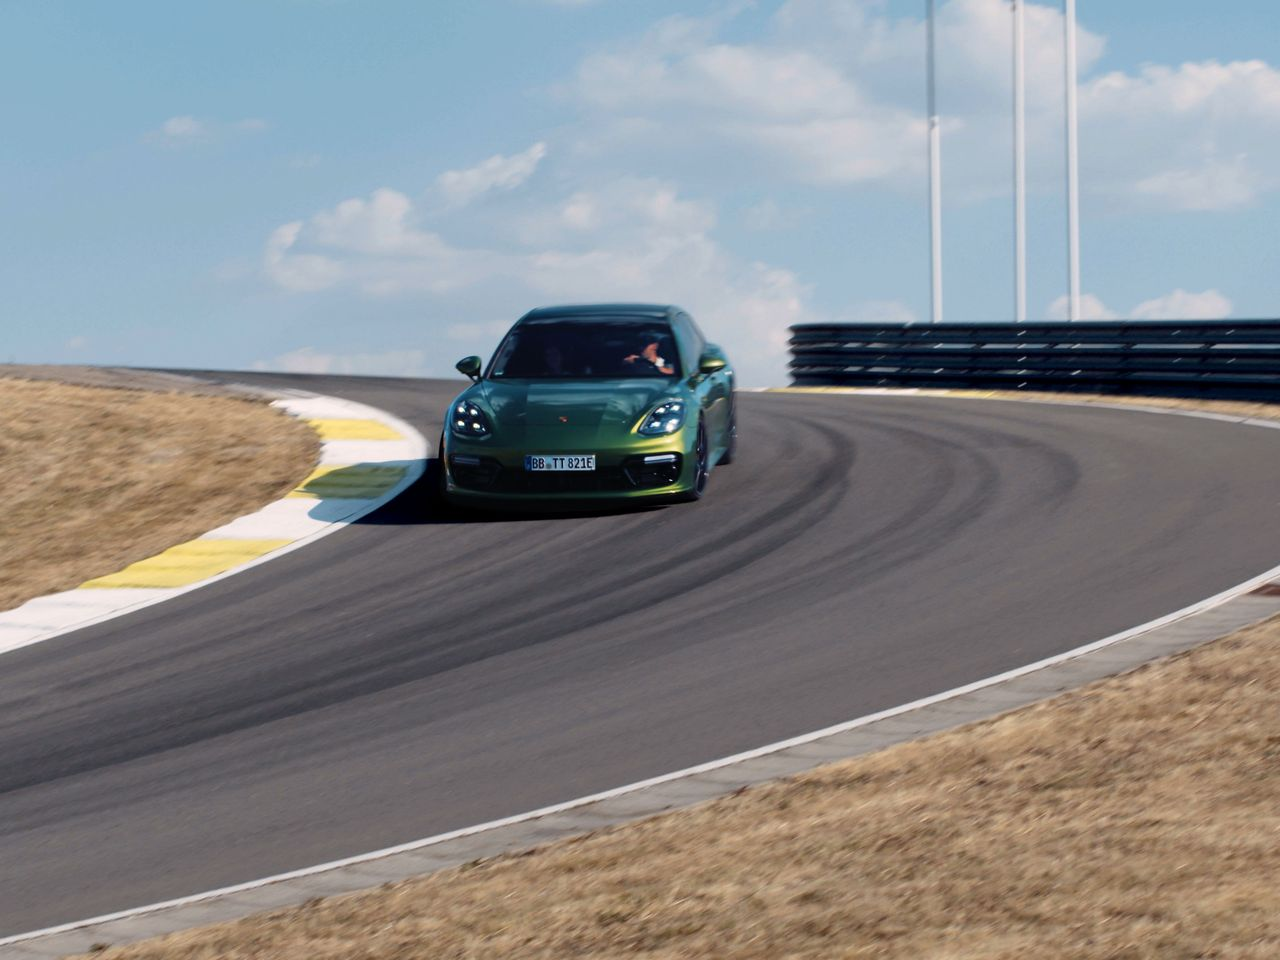 Attacking the track with adrenaline and dynamism: the Panamera Turbo S E-Hybrid Sport Turismo.